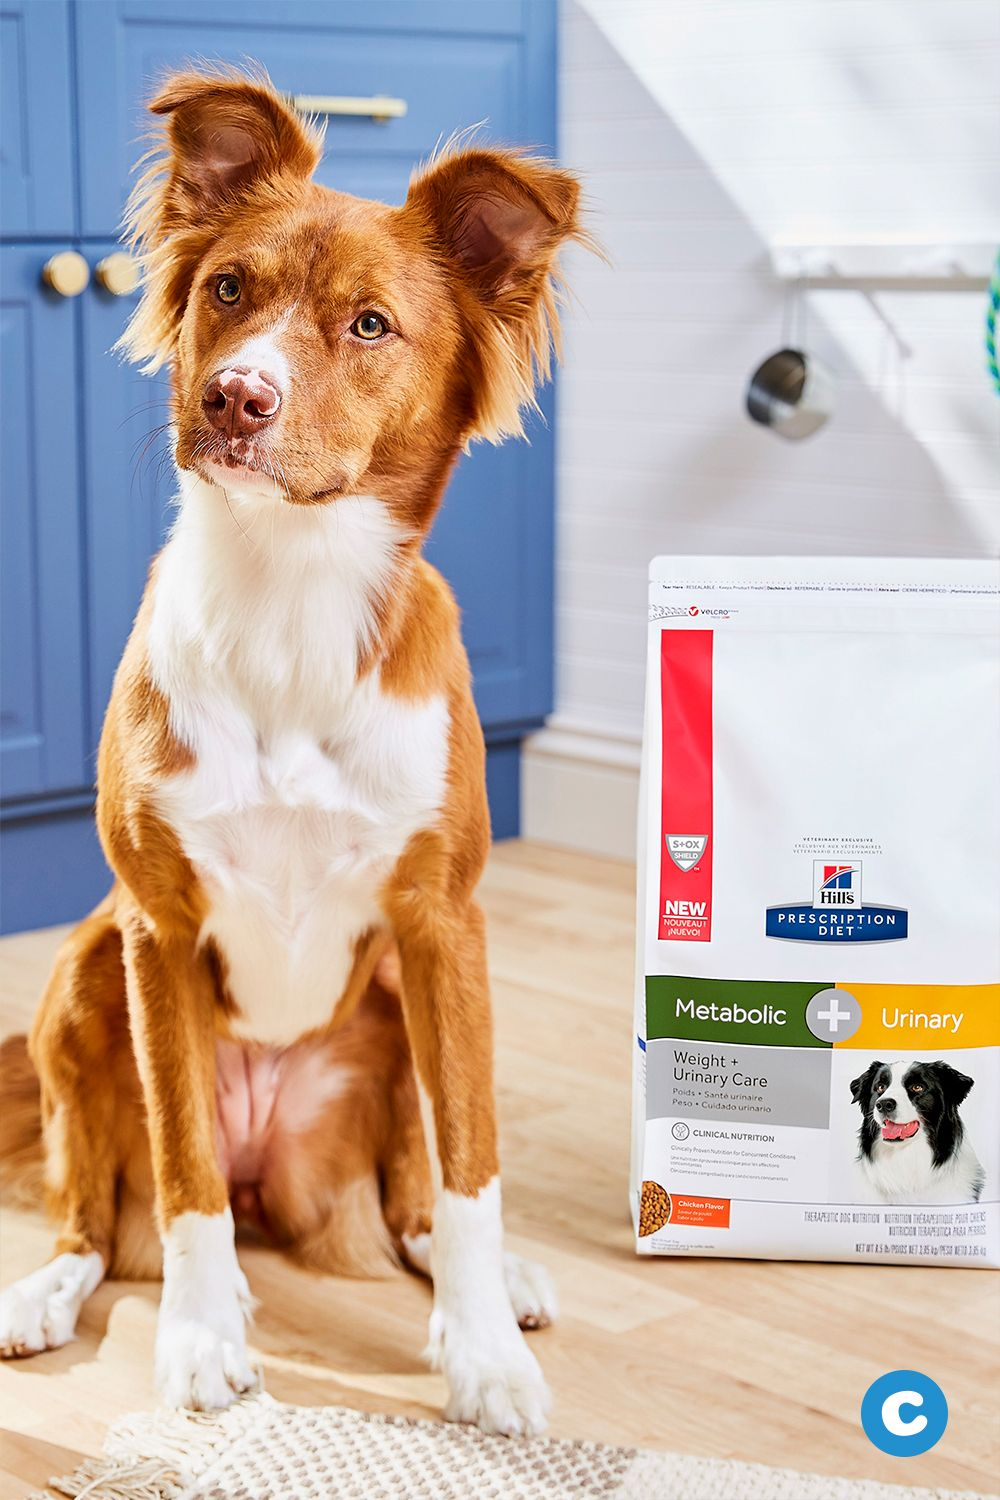 Hill S Prescription Diet C D Multicare Metabolic Urinary Weight Care Chicken Flavor Dry Dog Food 8 5 Lb Bag Chewy Com Dry Dog Food Diet Dog Food Chicken Flavors